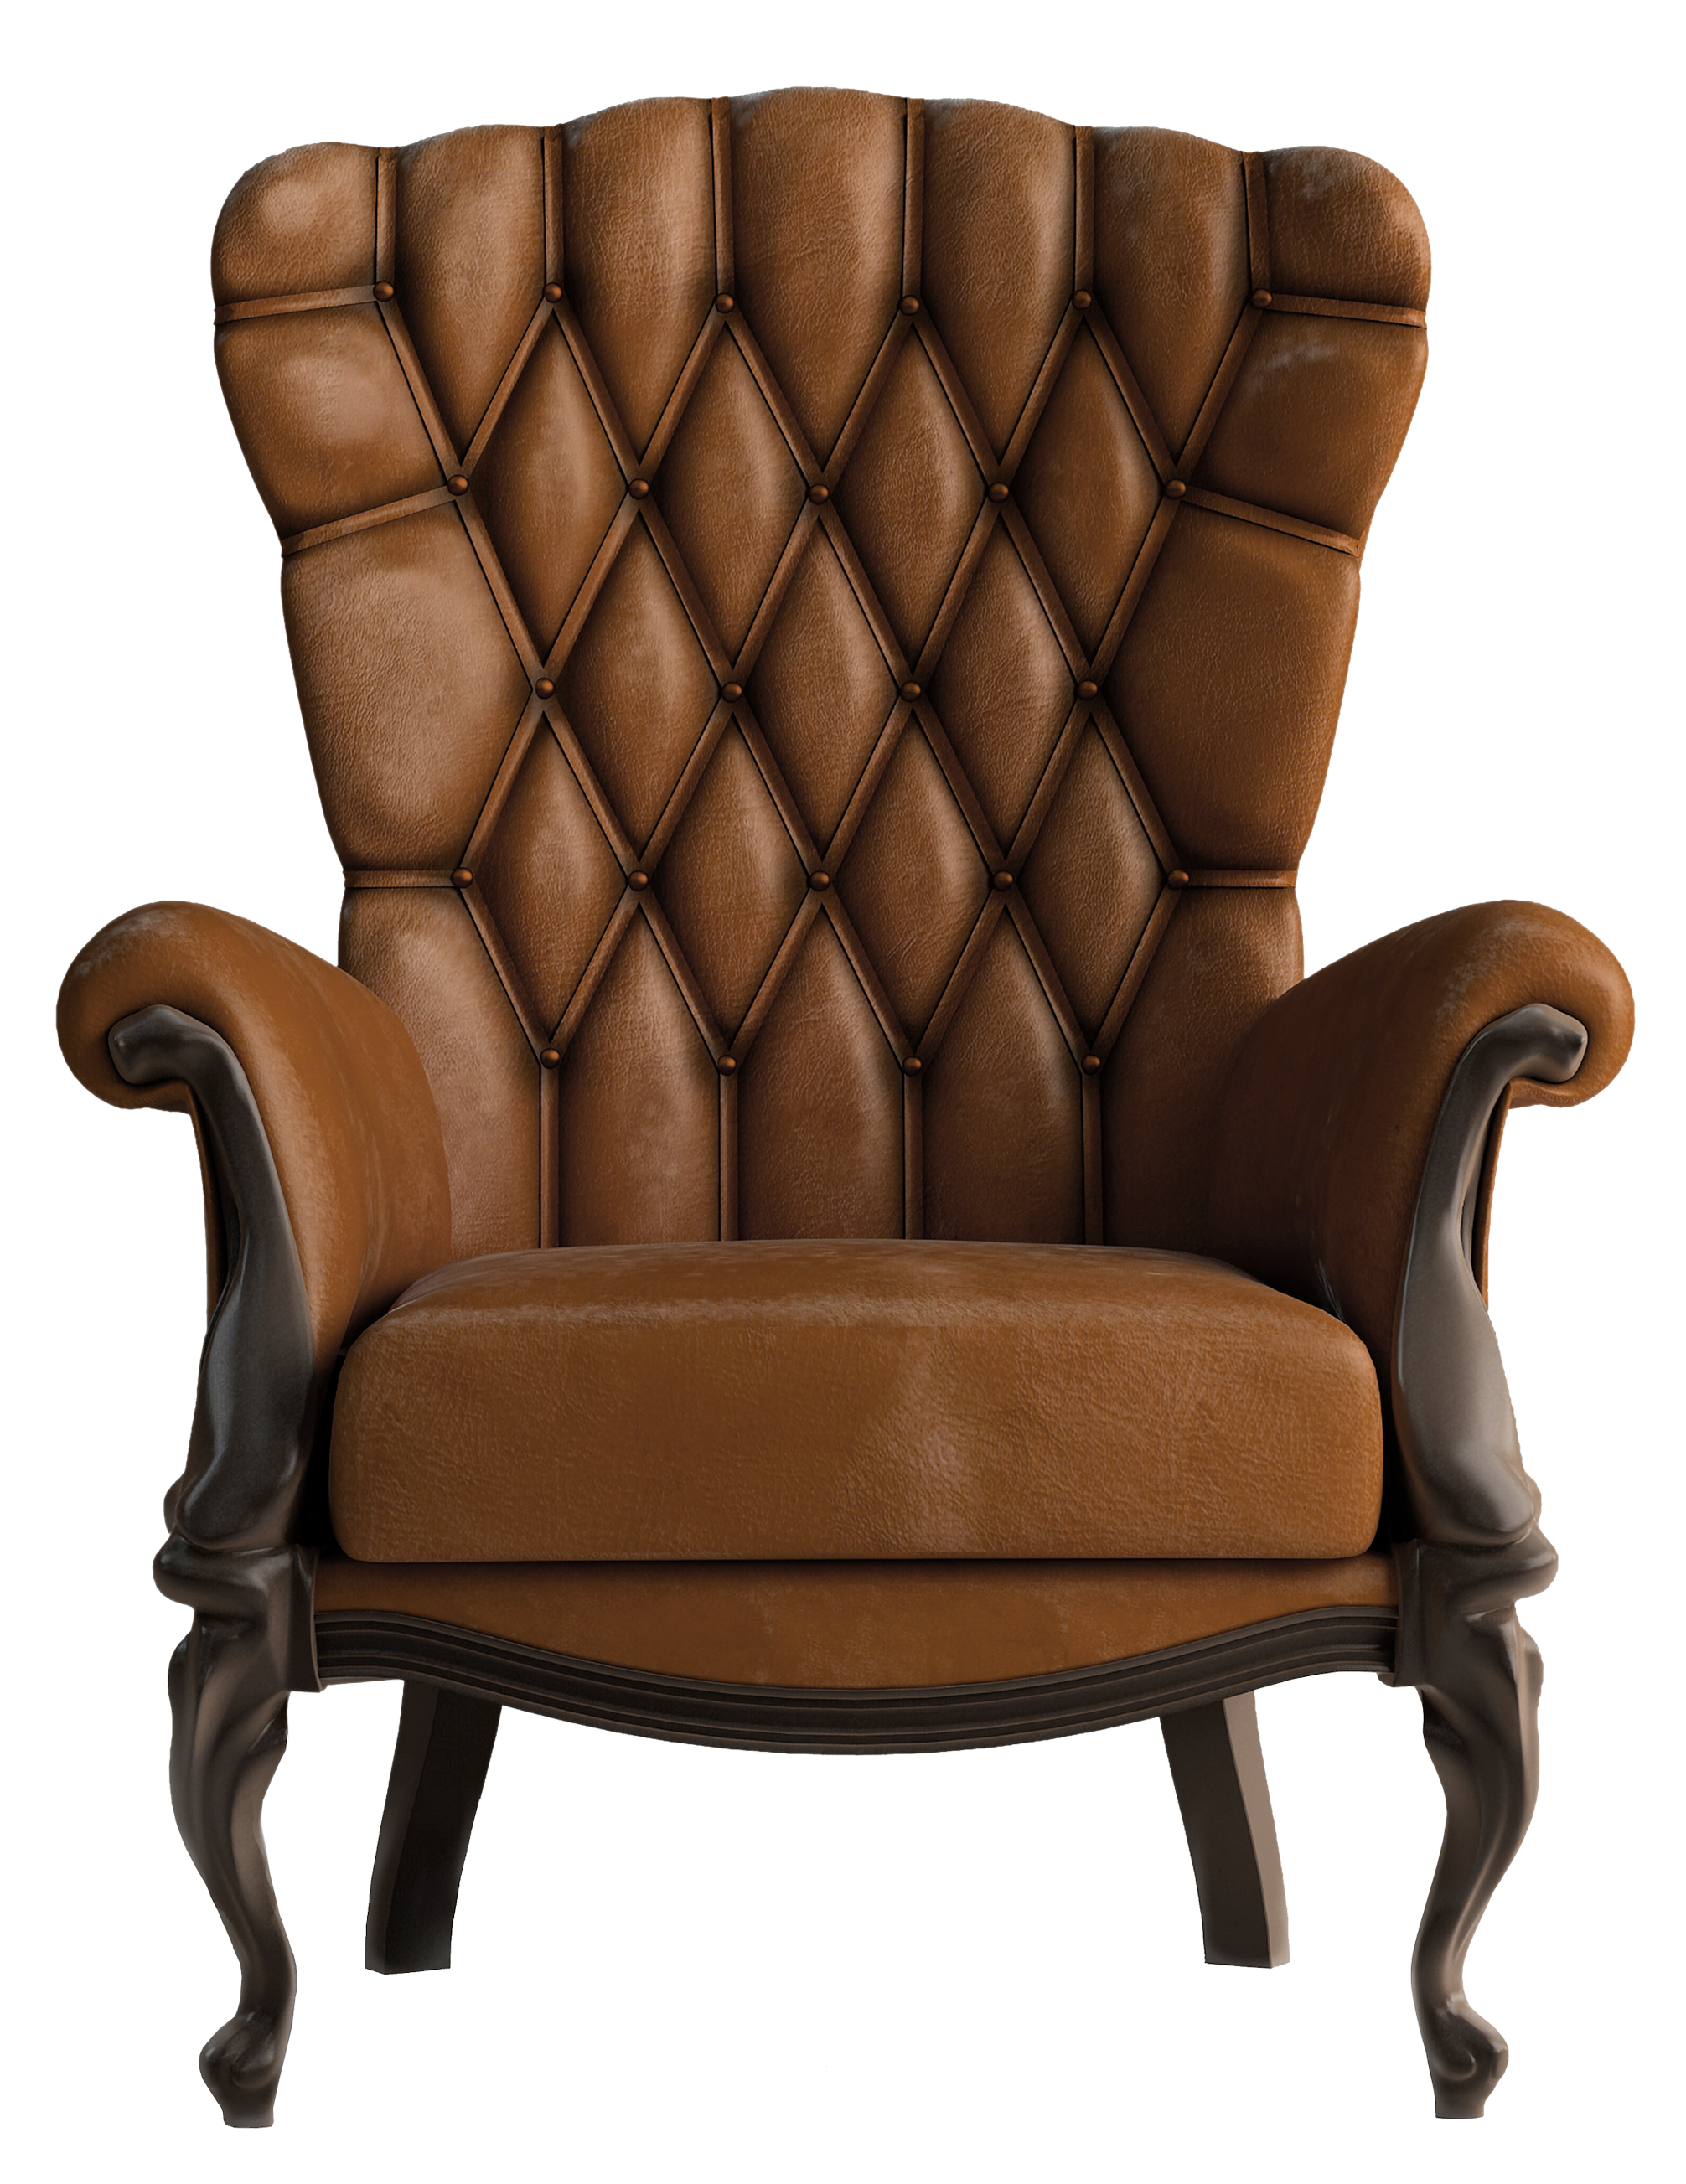 Armchair HD PNG